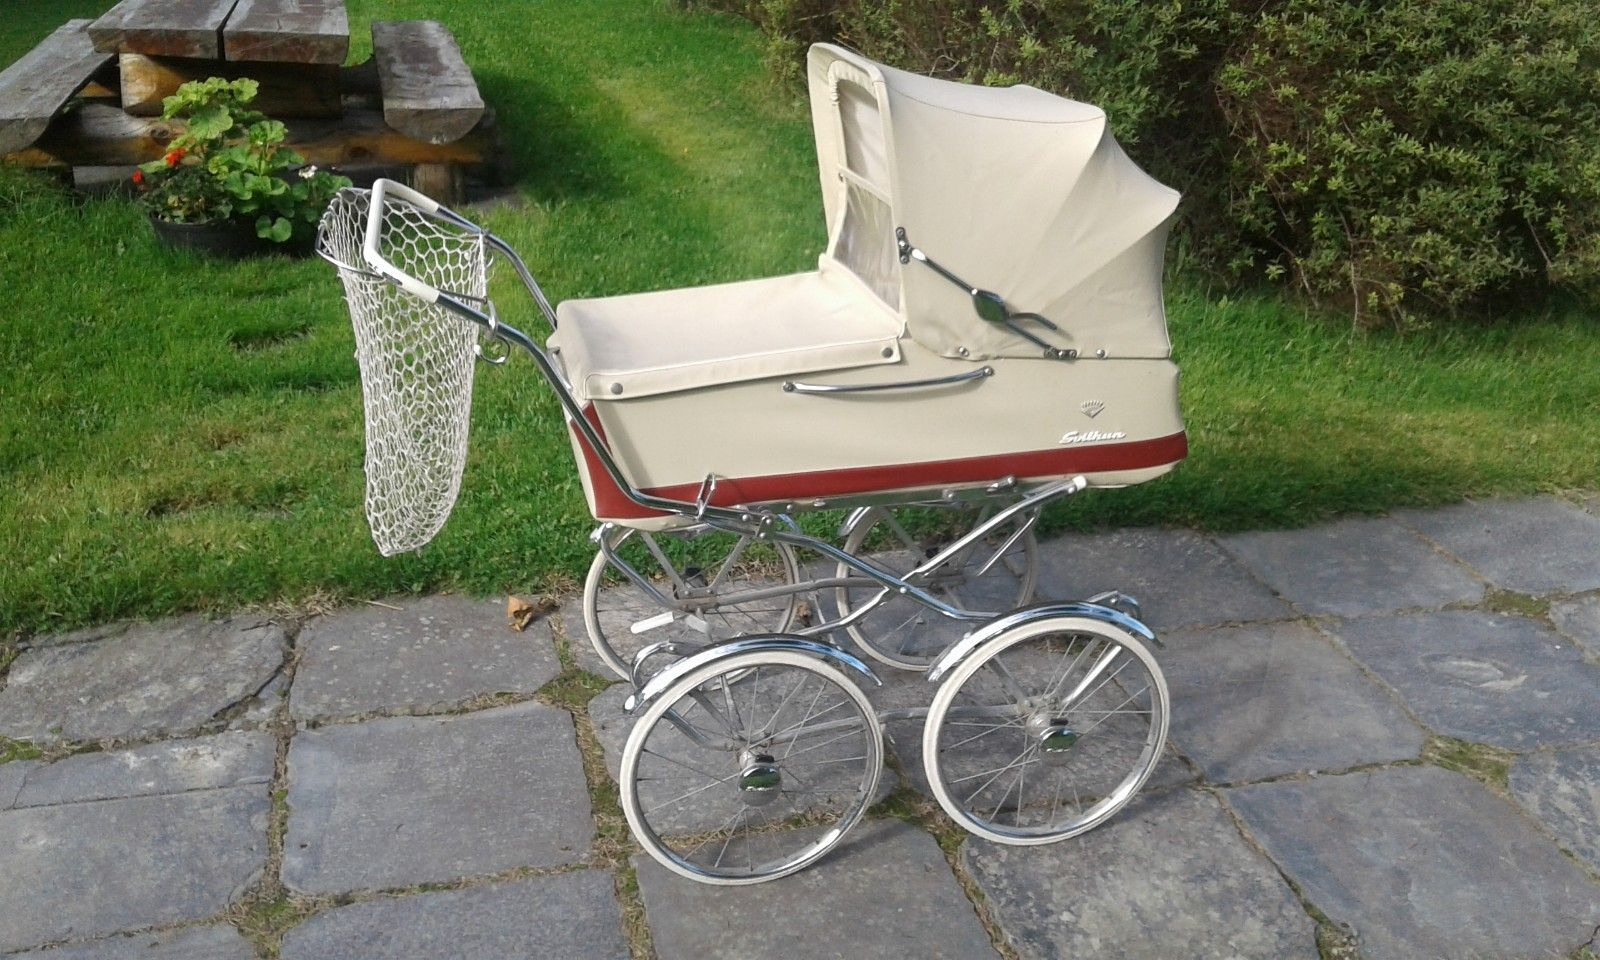 retro barnevogn FINN – Retro barnevogn | Vintage prams and pushchairs | Pinterest  retro barnevogn